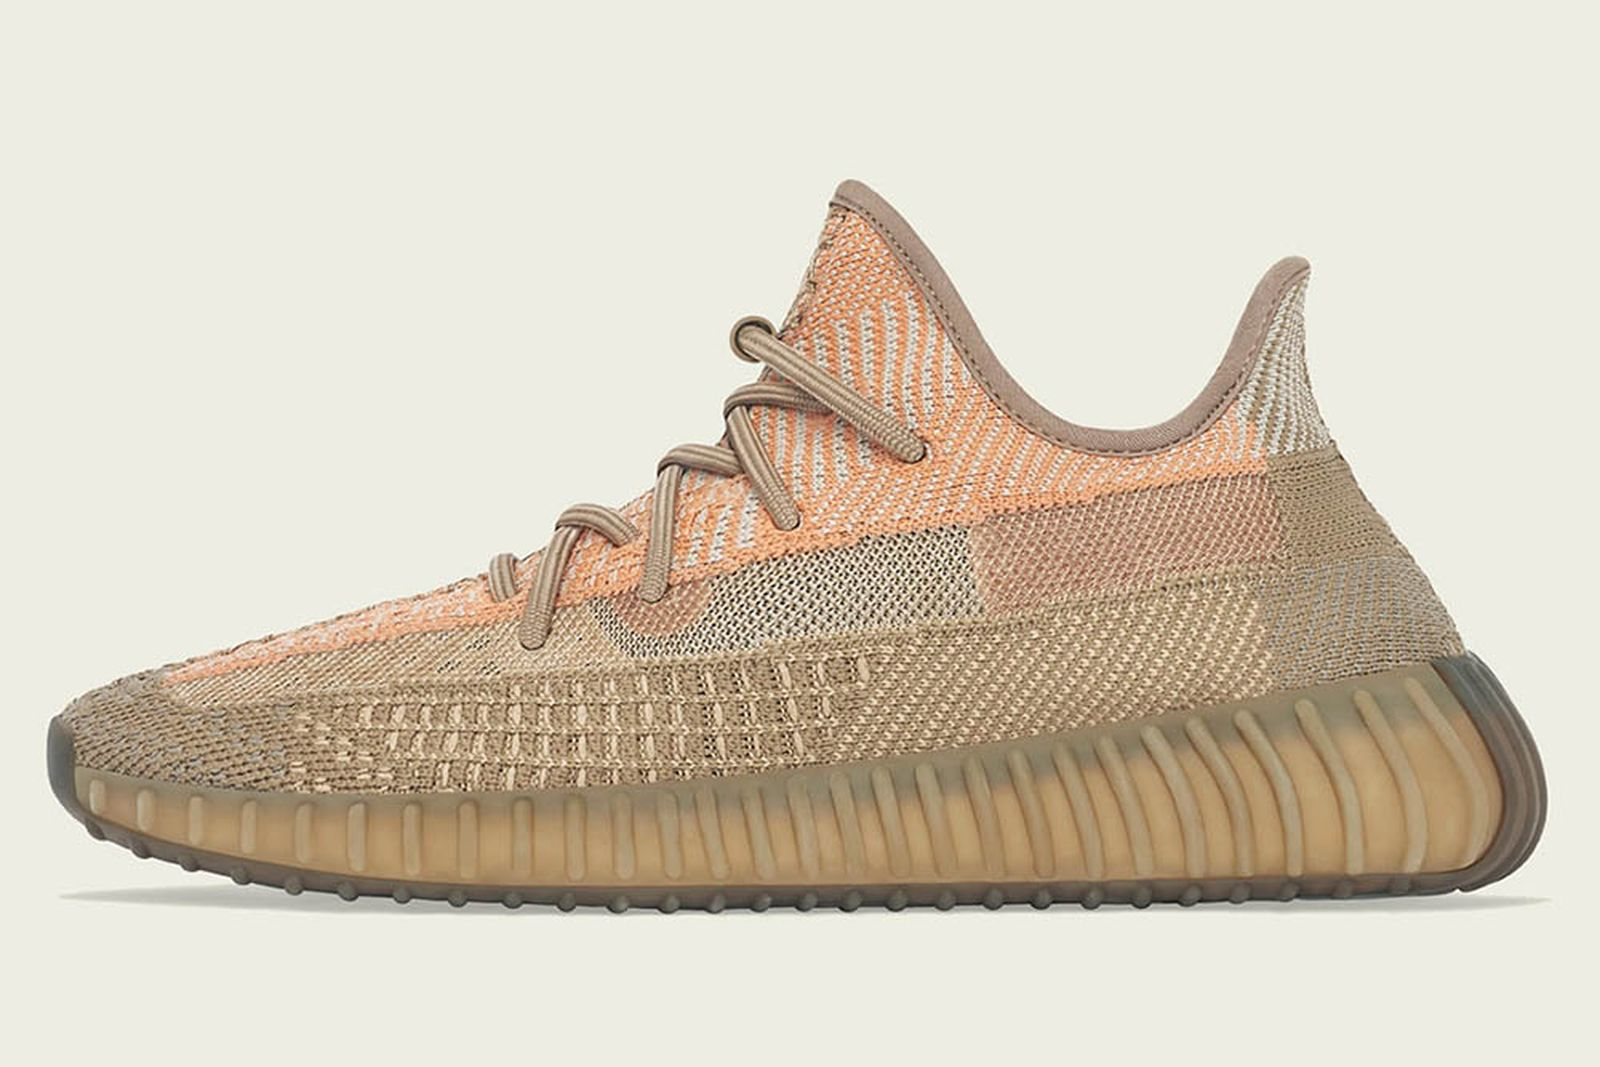 adidas-yeezy-boost-350-v2-sand-taupe-release-date-price-01